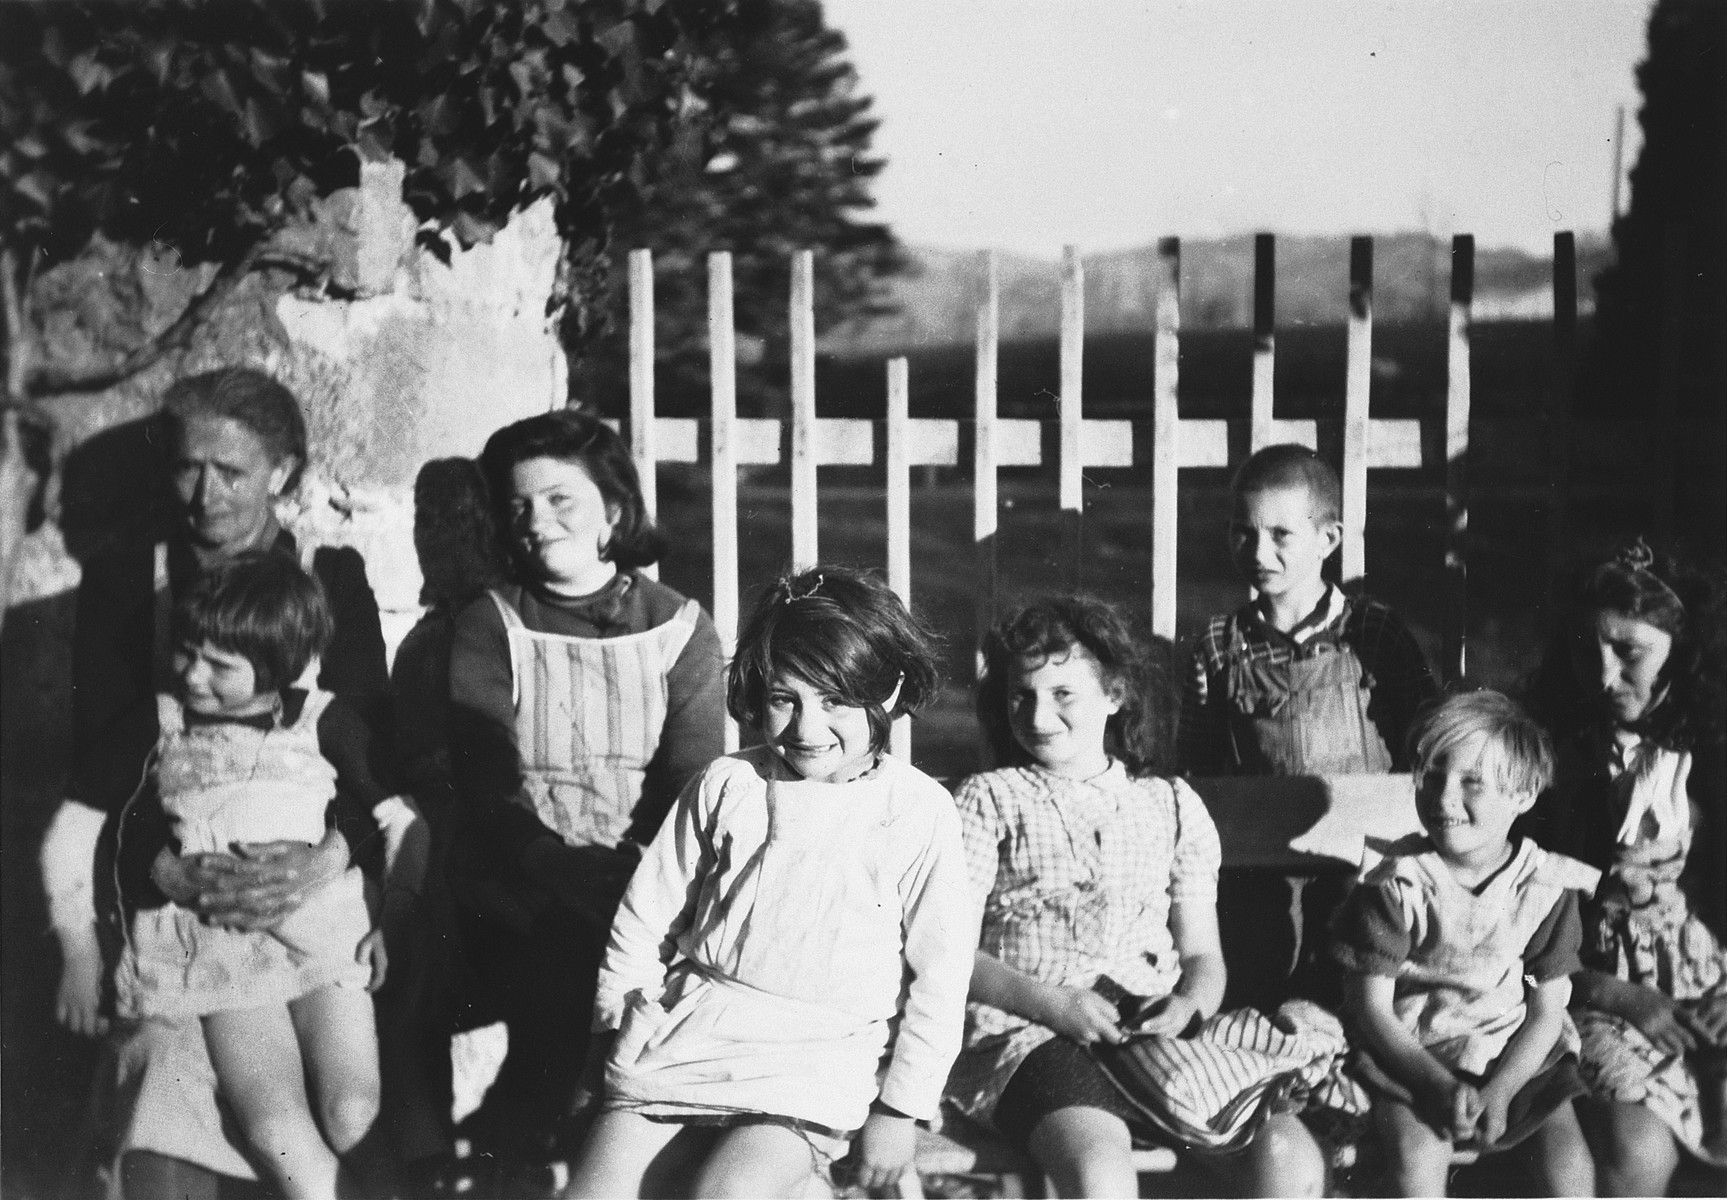 Madam Nadal  poses with a group of younger children in Chateau de la Hille.  Josette Mendes (now Zylberstein) is pictured in the center, front.